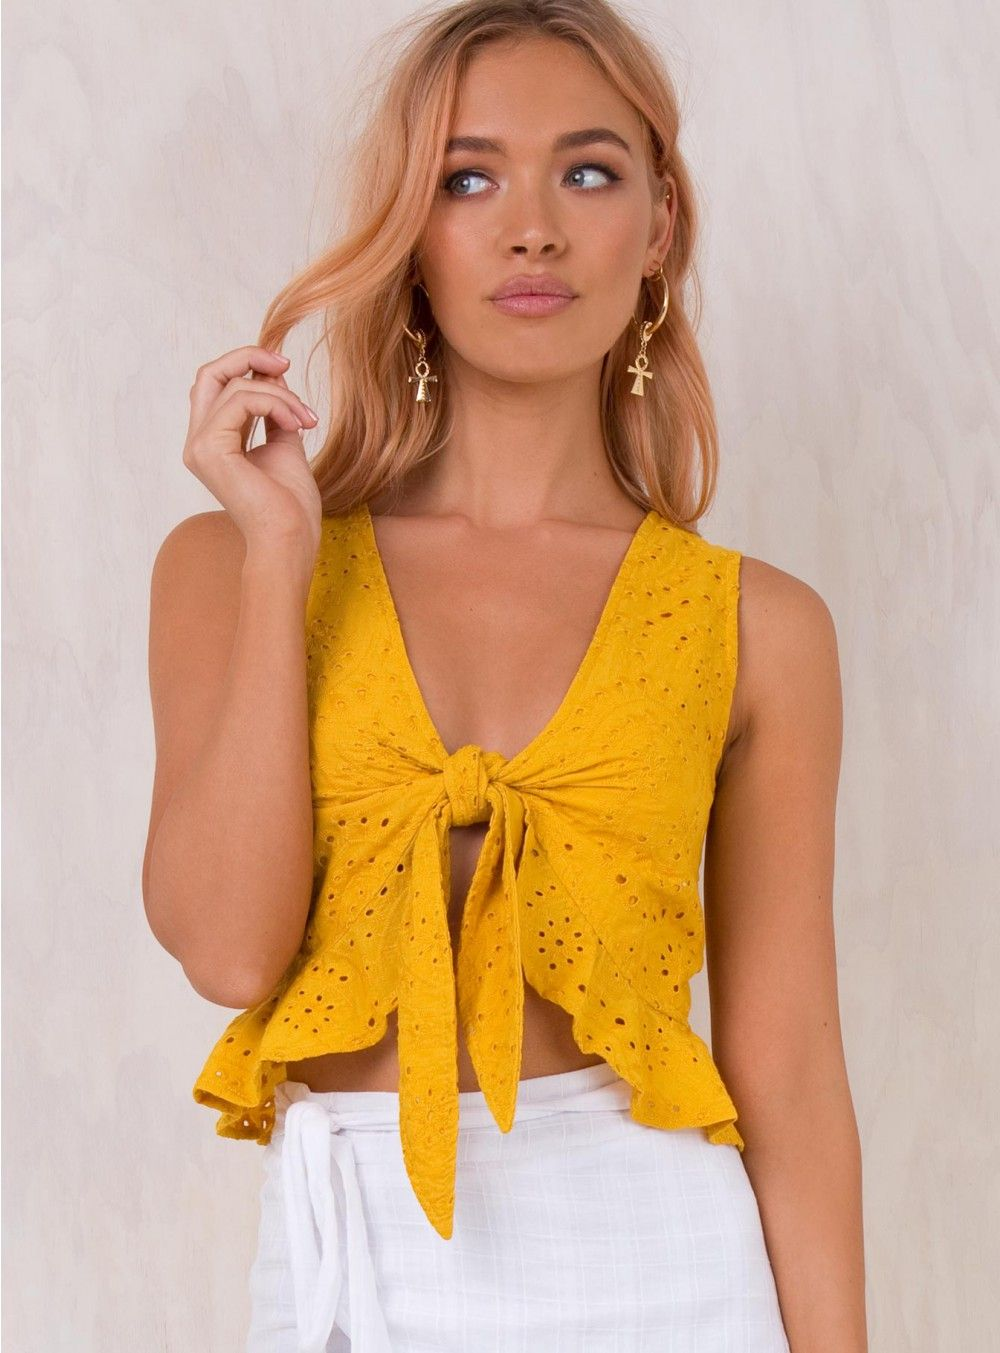 08a9c418864826 Jilly Tie Front Top Mustard | Coachella Outfit Ideas 2018 in 2019 ...